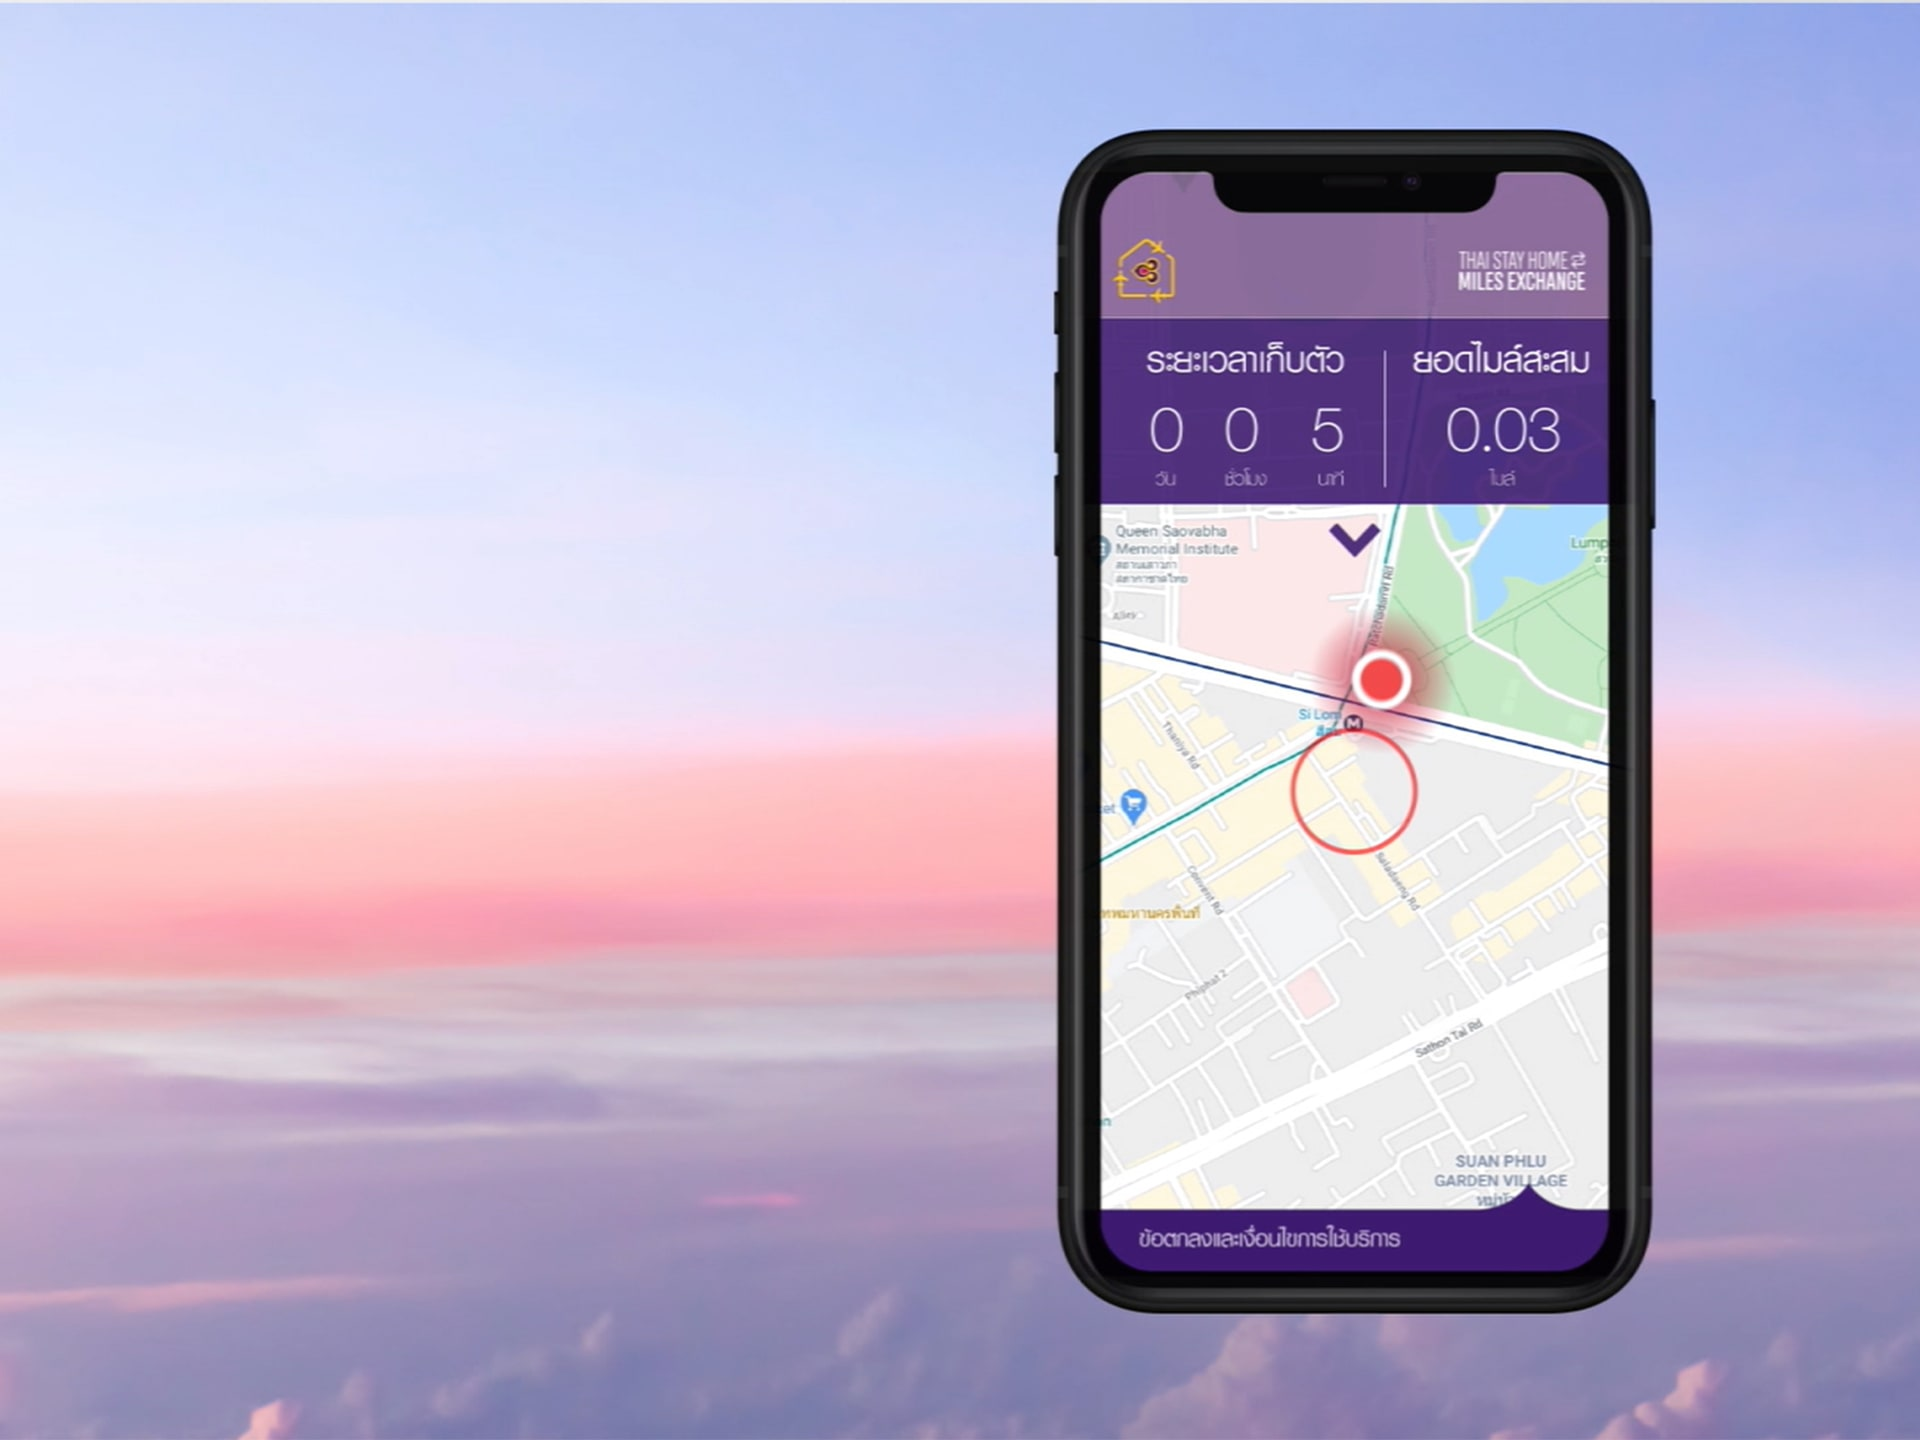 Thai Airlines hero image showing mobile phone with Thai Airlines App